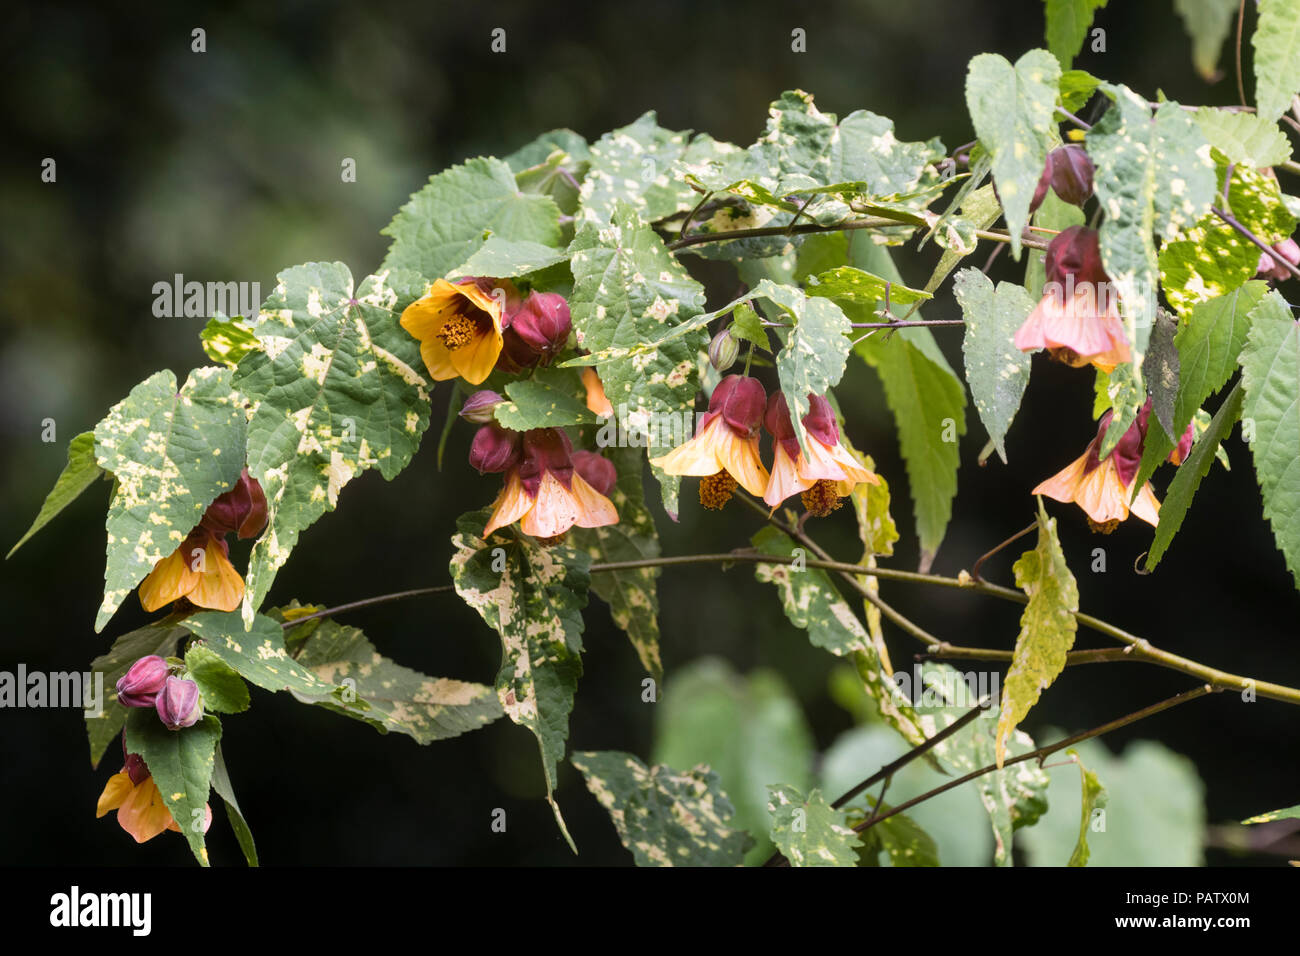 Red and yellow pendant bell flowers and yellow mottle foliage of the frost tender wall shrub Abutilon x milleri 'Variegatum' - Stock Image